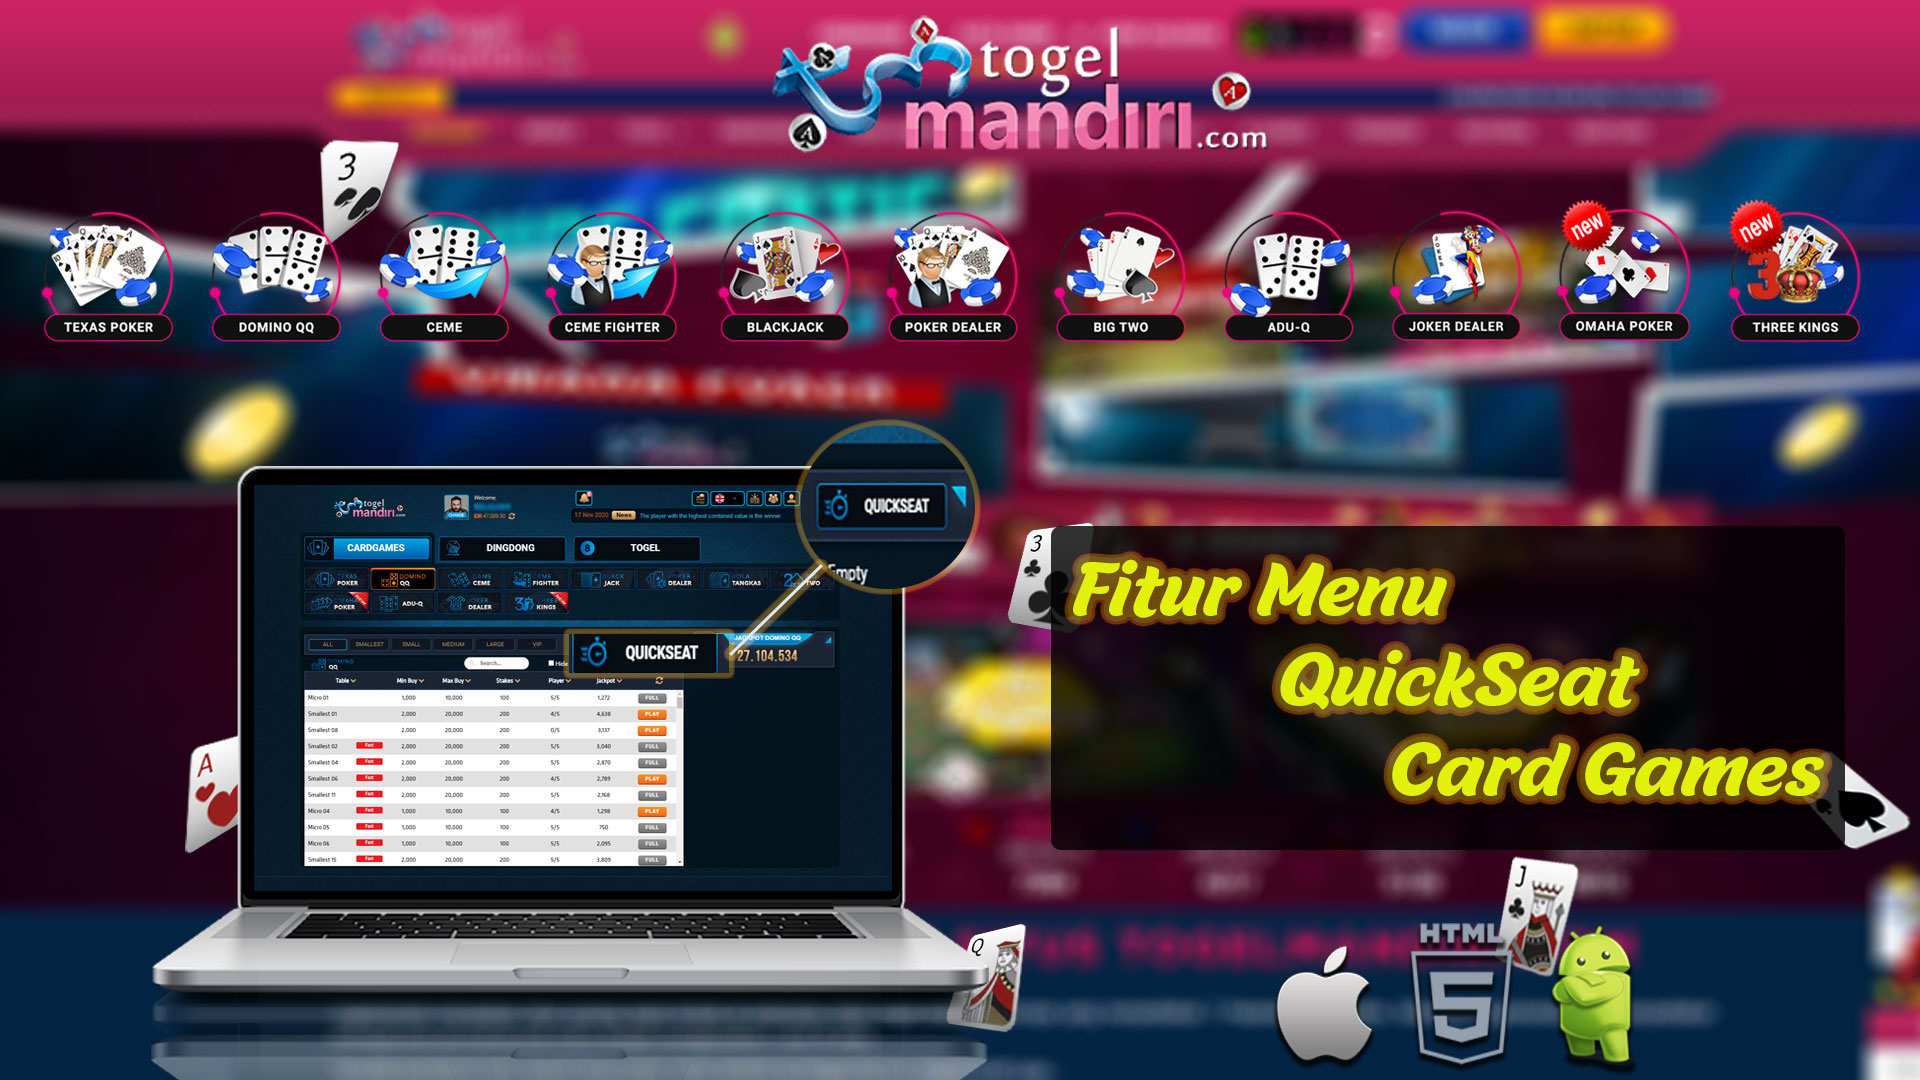 Fitur Menu QuickSeat Card Games